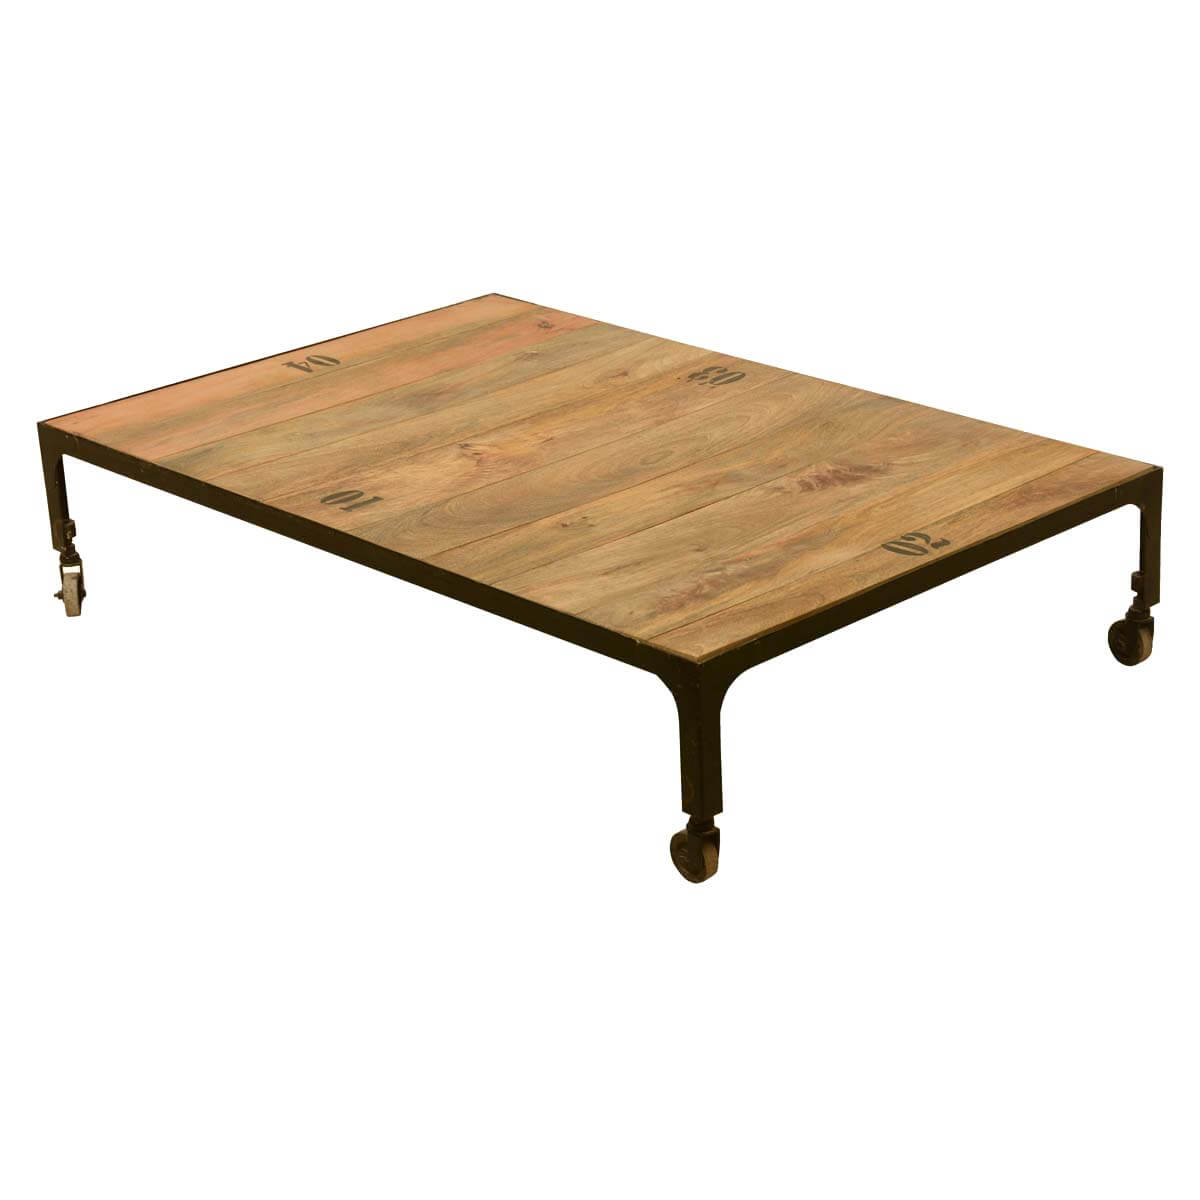 Industrial fusion solid wood iron rustic rolling cart coffee table Rustic wooden coffee tables